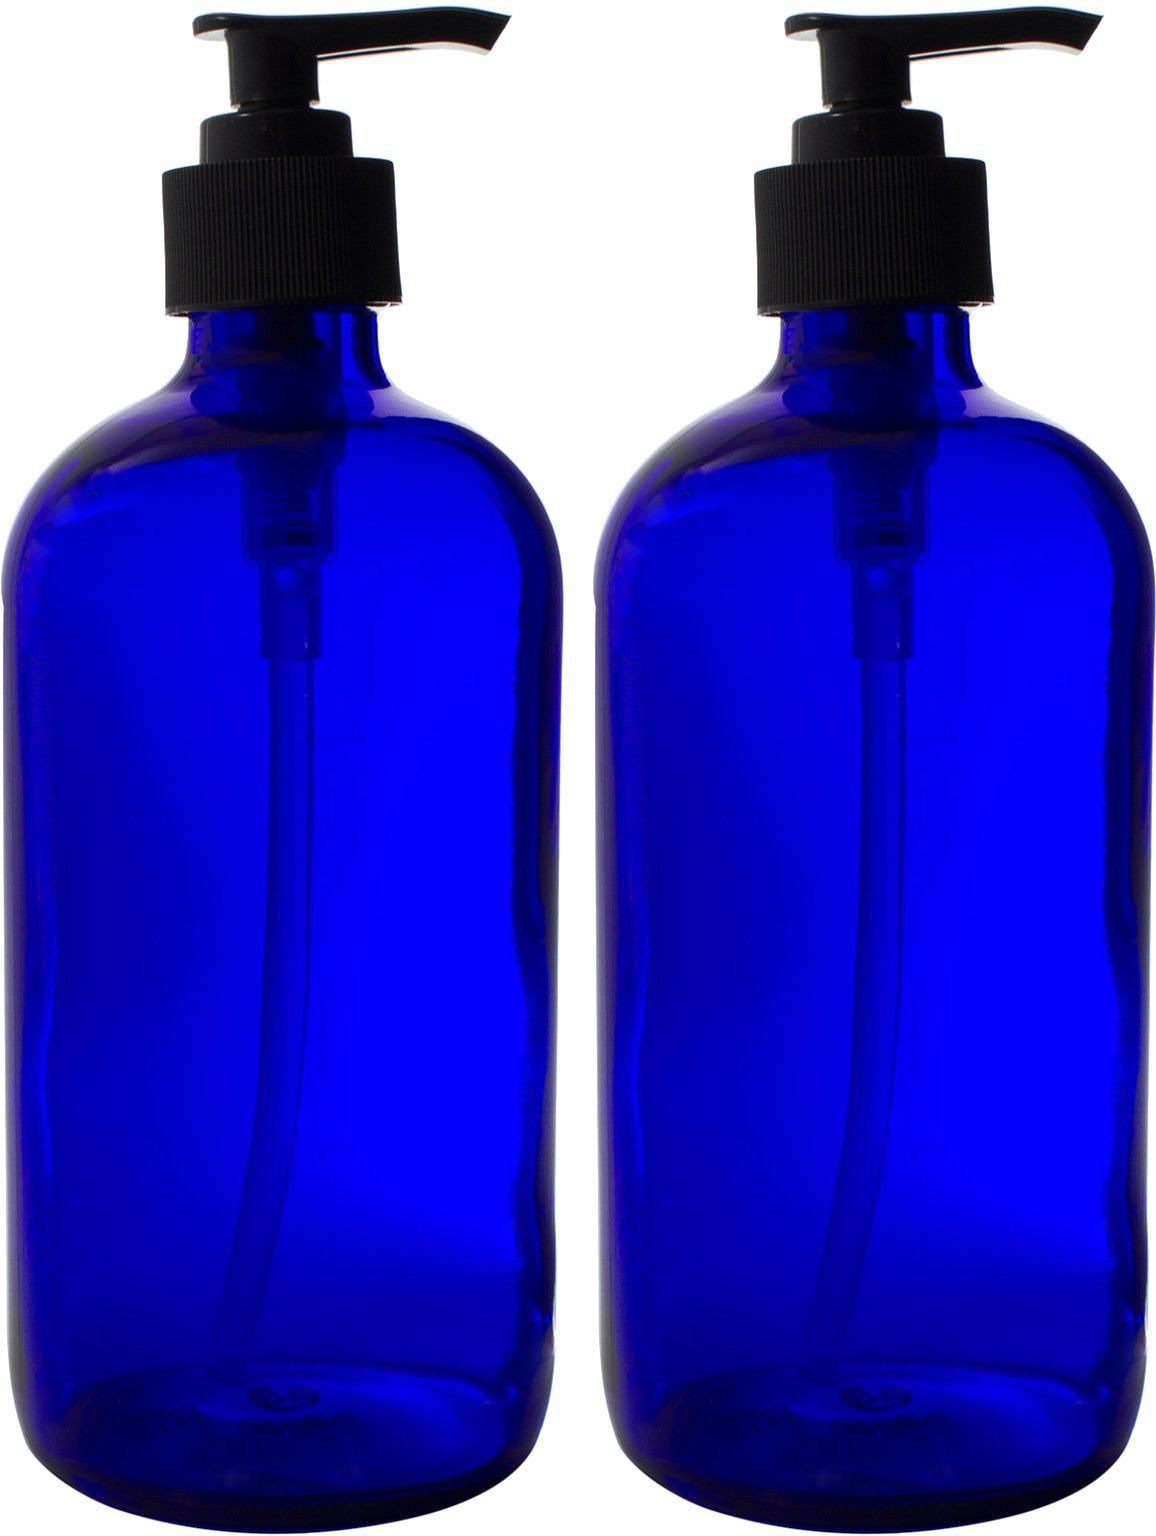 16-Ounce Blue Glass Bottles w/Black Soap Pumps - Large 16oz Size is Refillable and Great in the Kitchen or Bathroom for Essential Oils, Lotions, and Liquid Soaps (2 Pack)